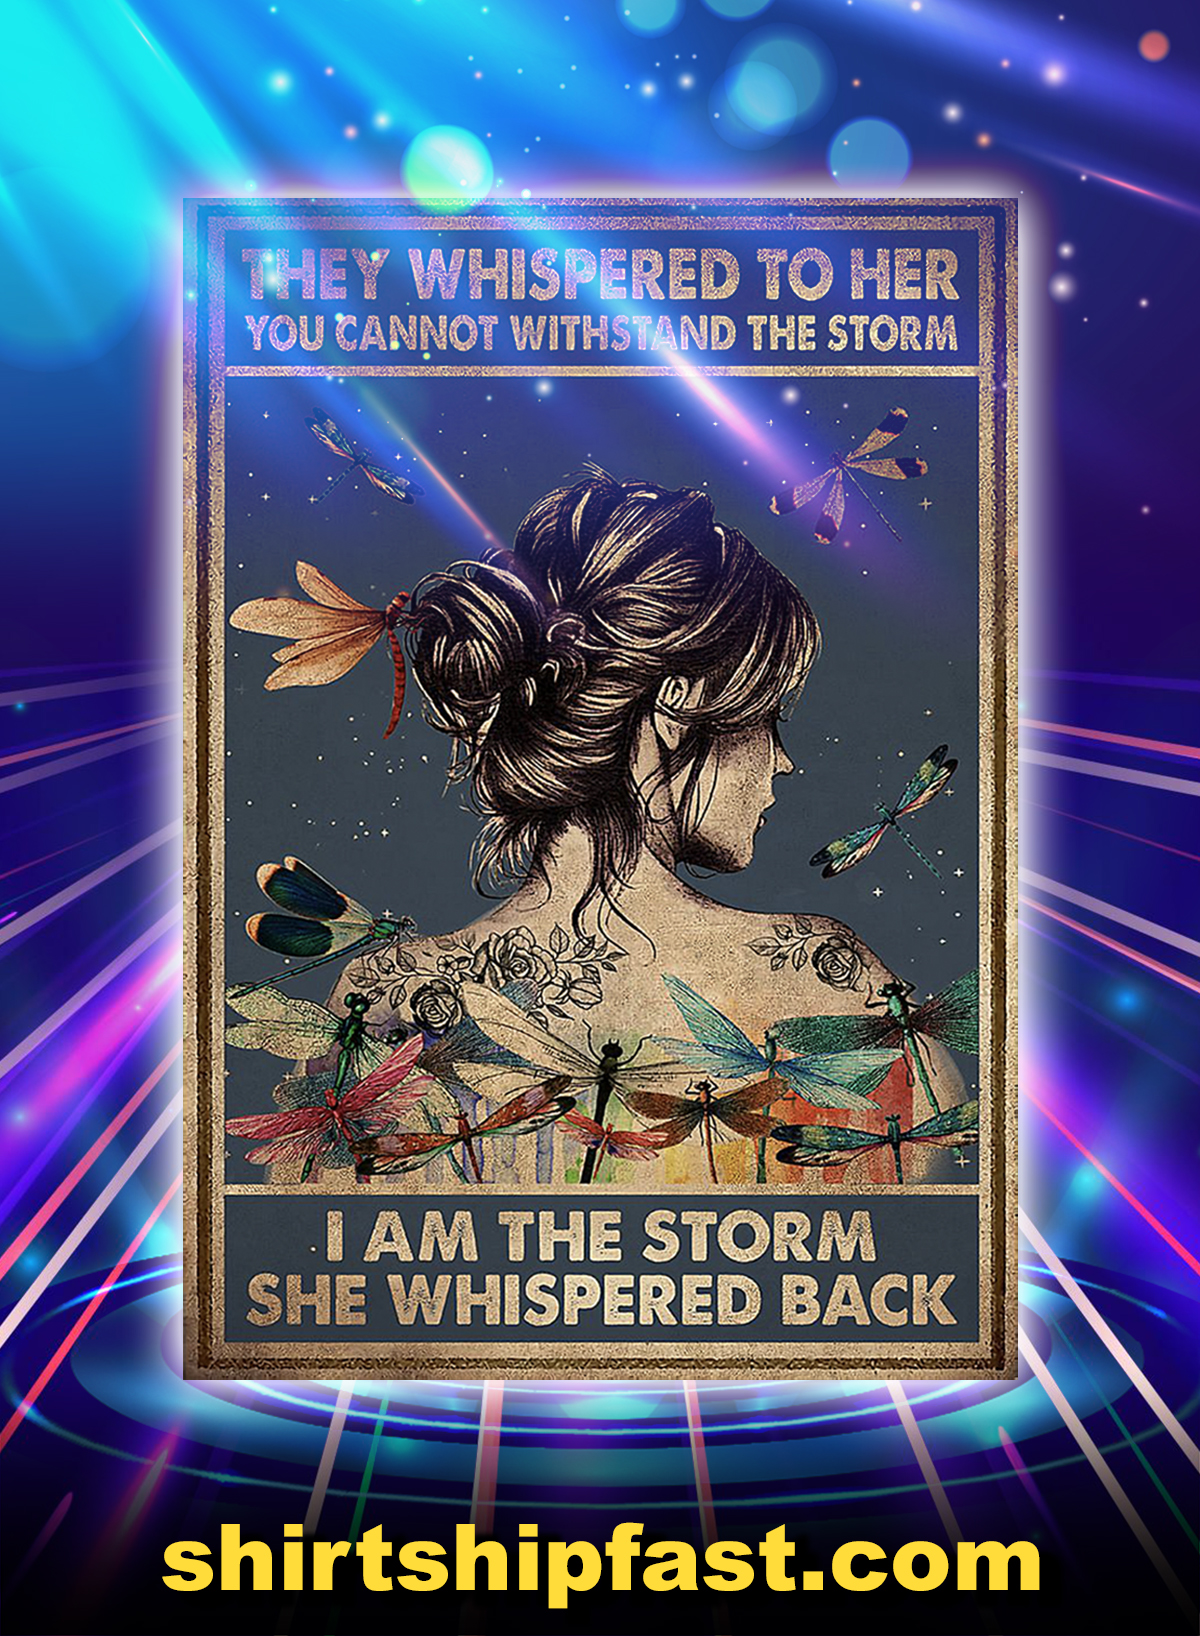 Hippie dragonfly they whispered to her you can not withstand the storm poster - A1